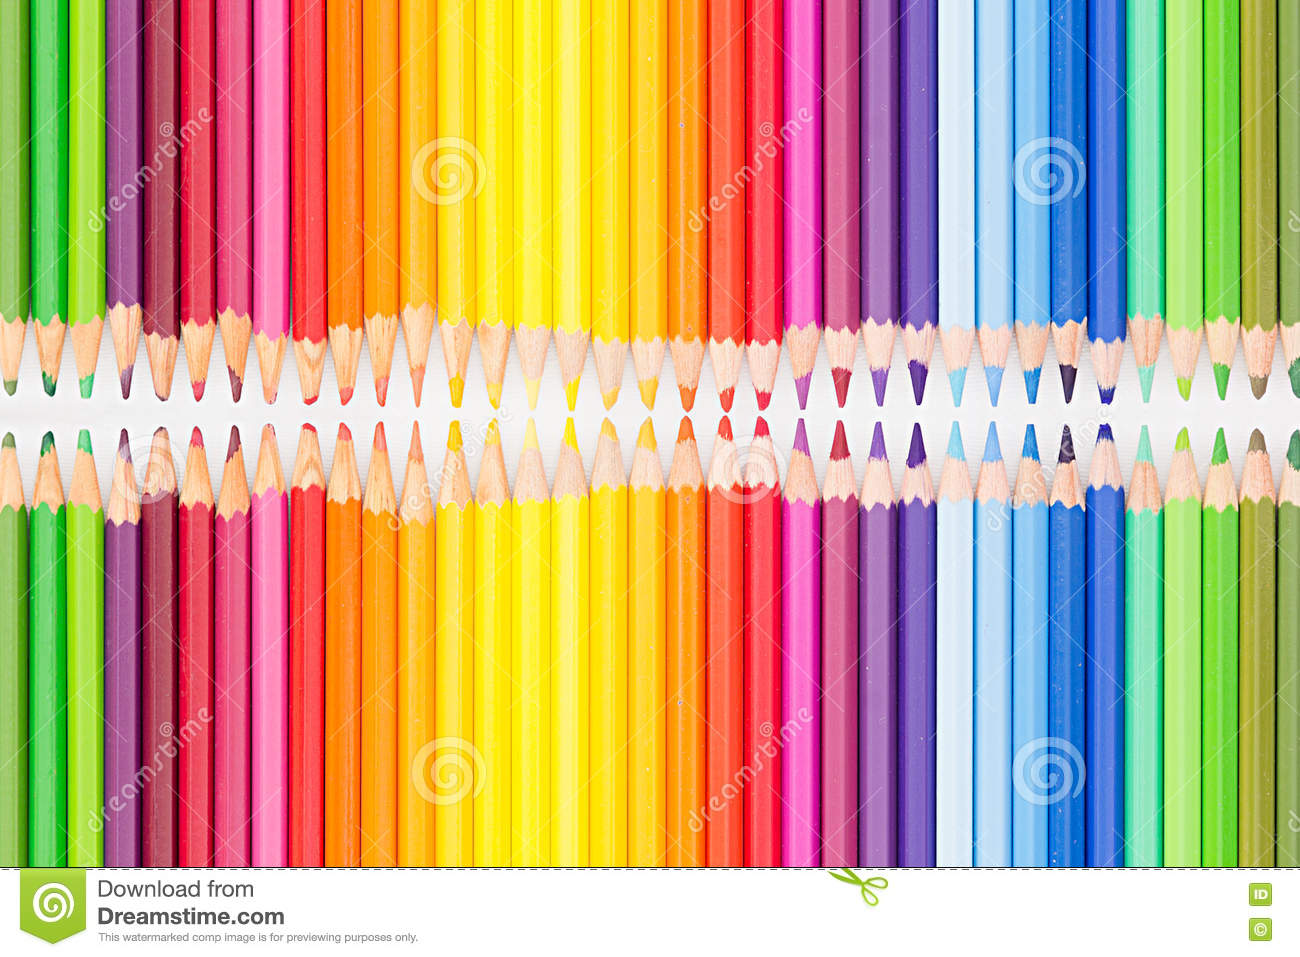 Rainbow colors in order pictures - Background Colored Order Pencils Rainbow